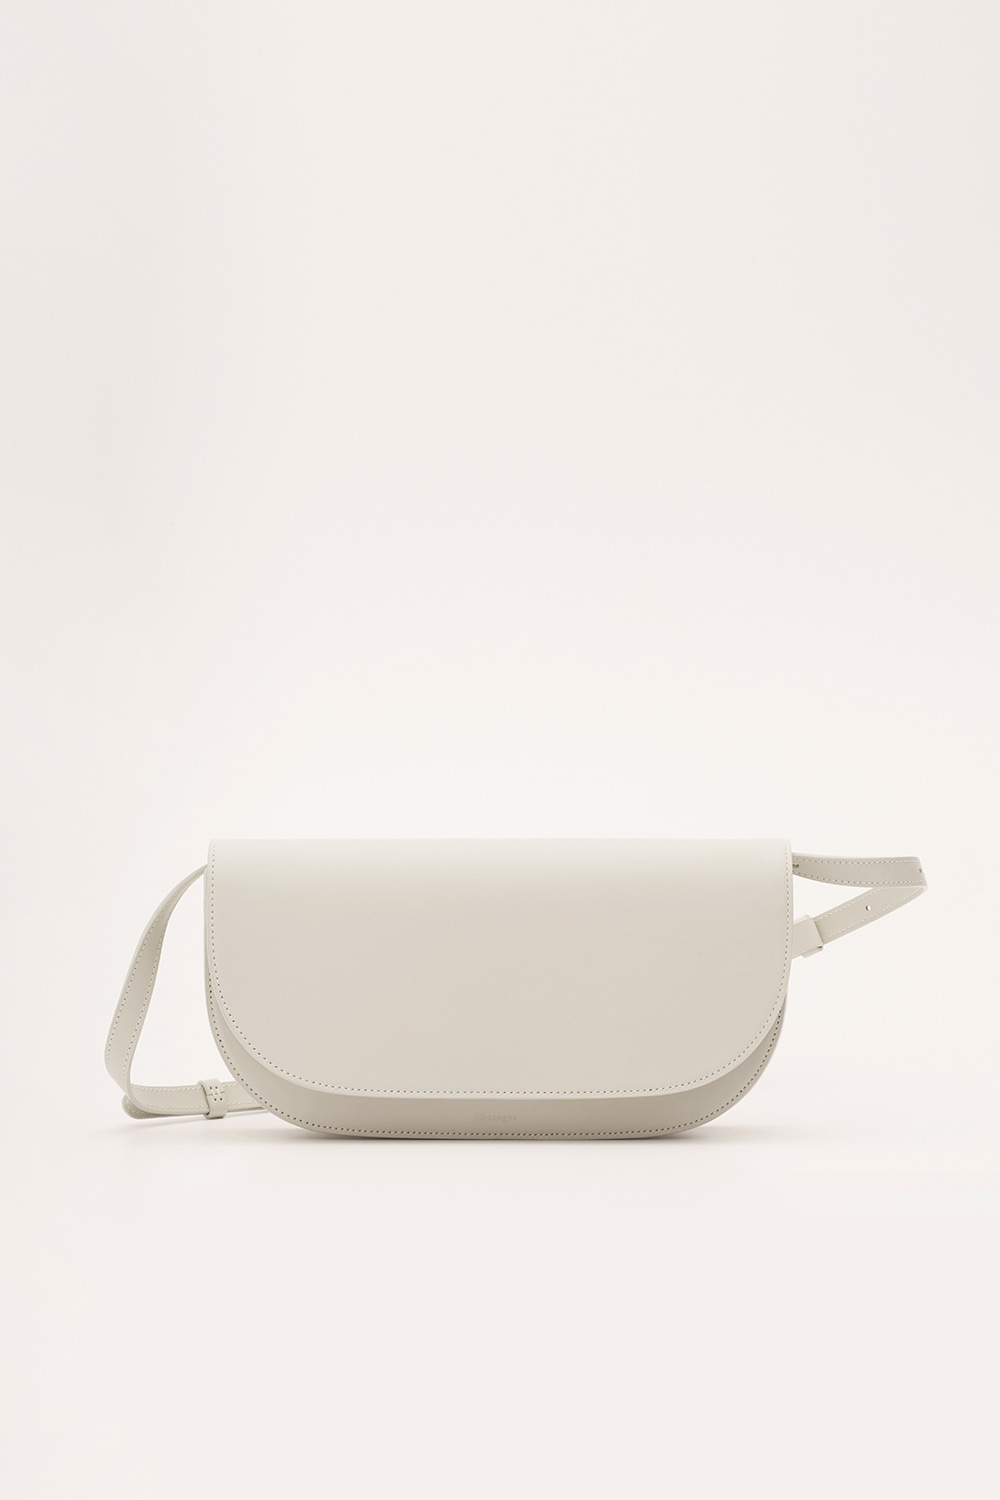 Broad Bag in Pale Stone